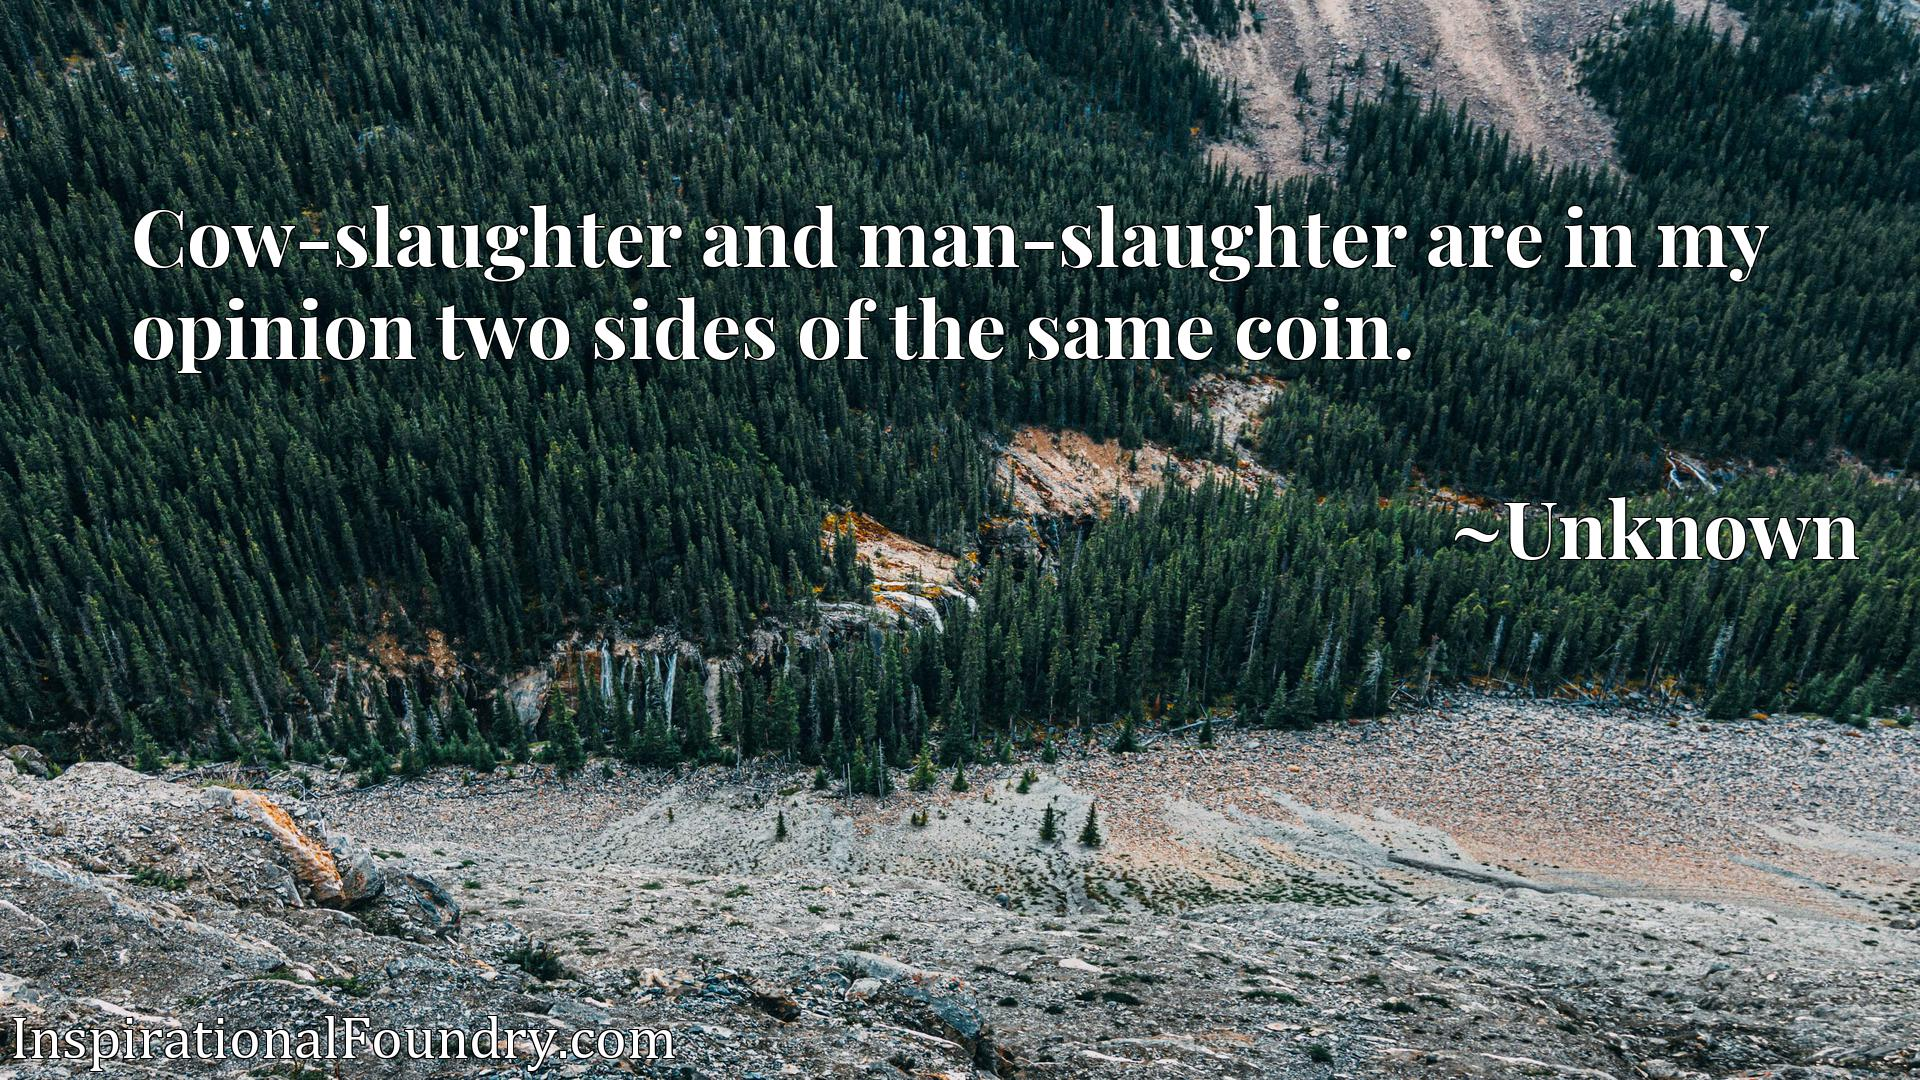 Cow-slaughter and man-slaughter are in my opinion two sides of the same coin.